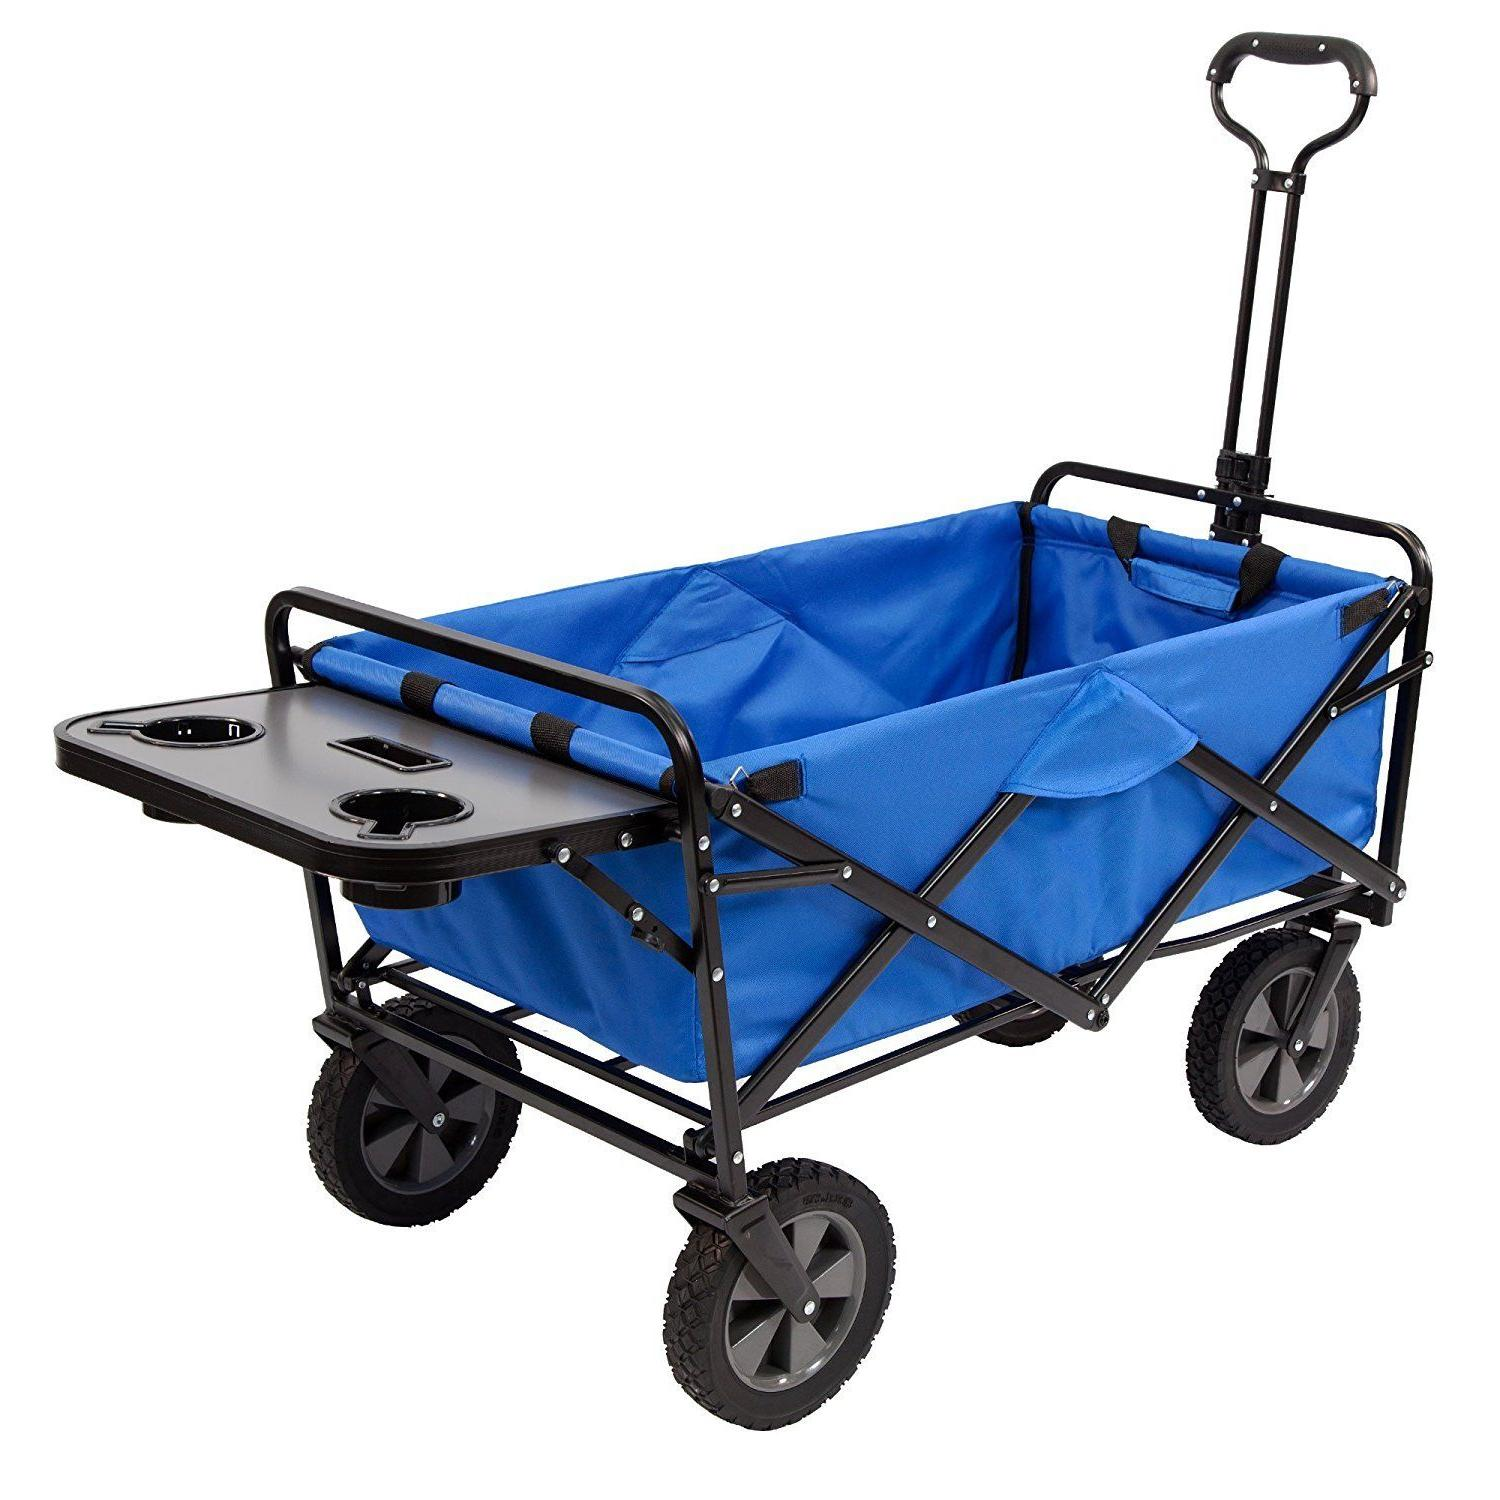 collapsible folding outdoor utility wagon with side